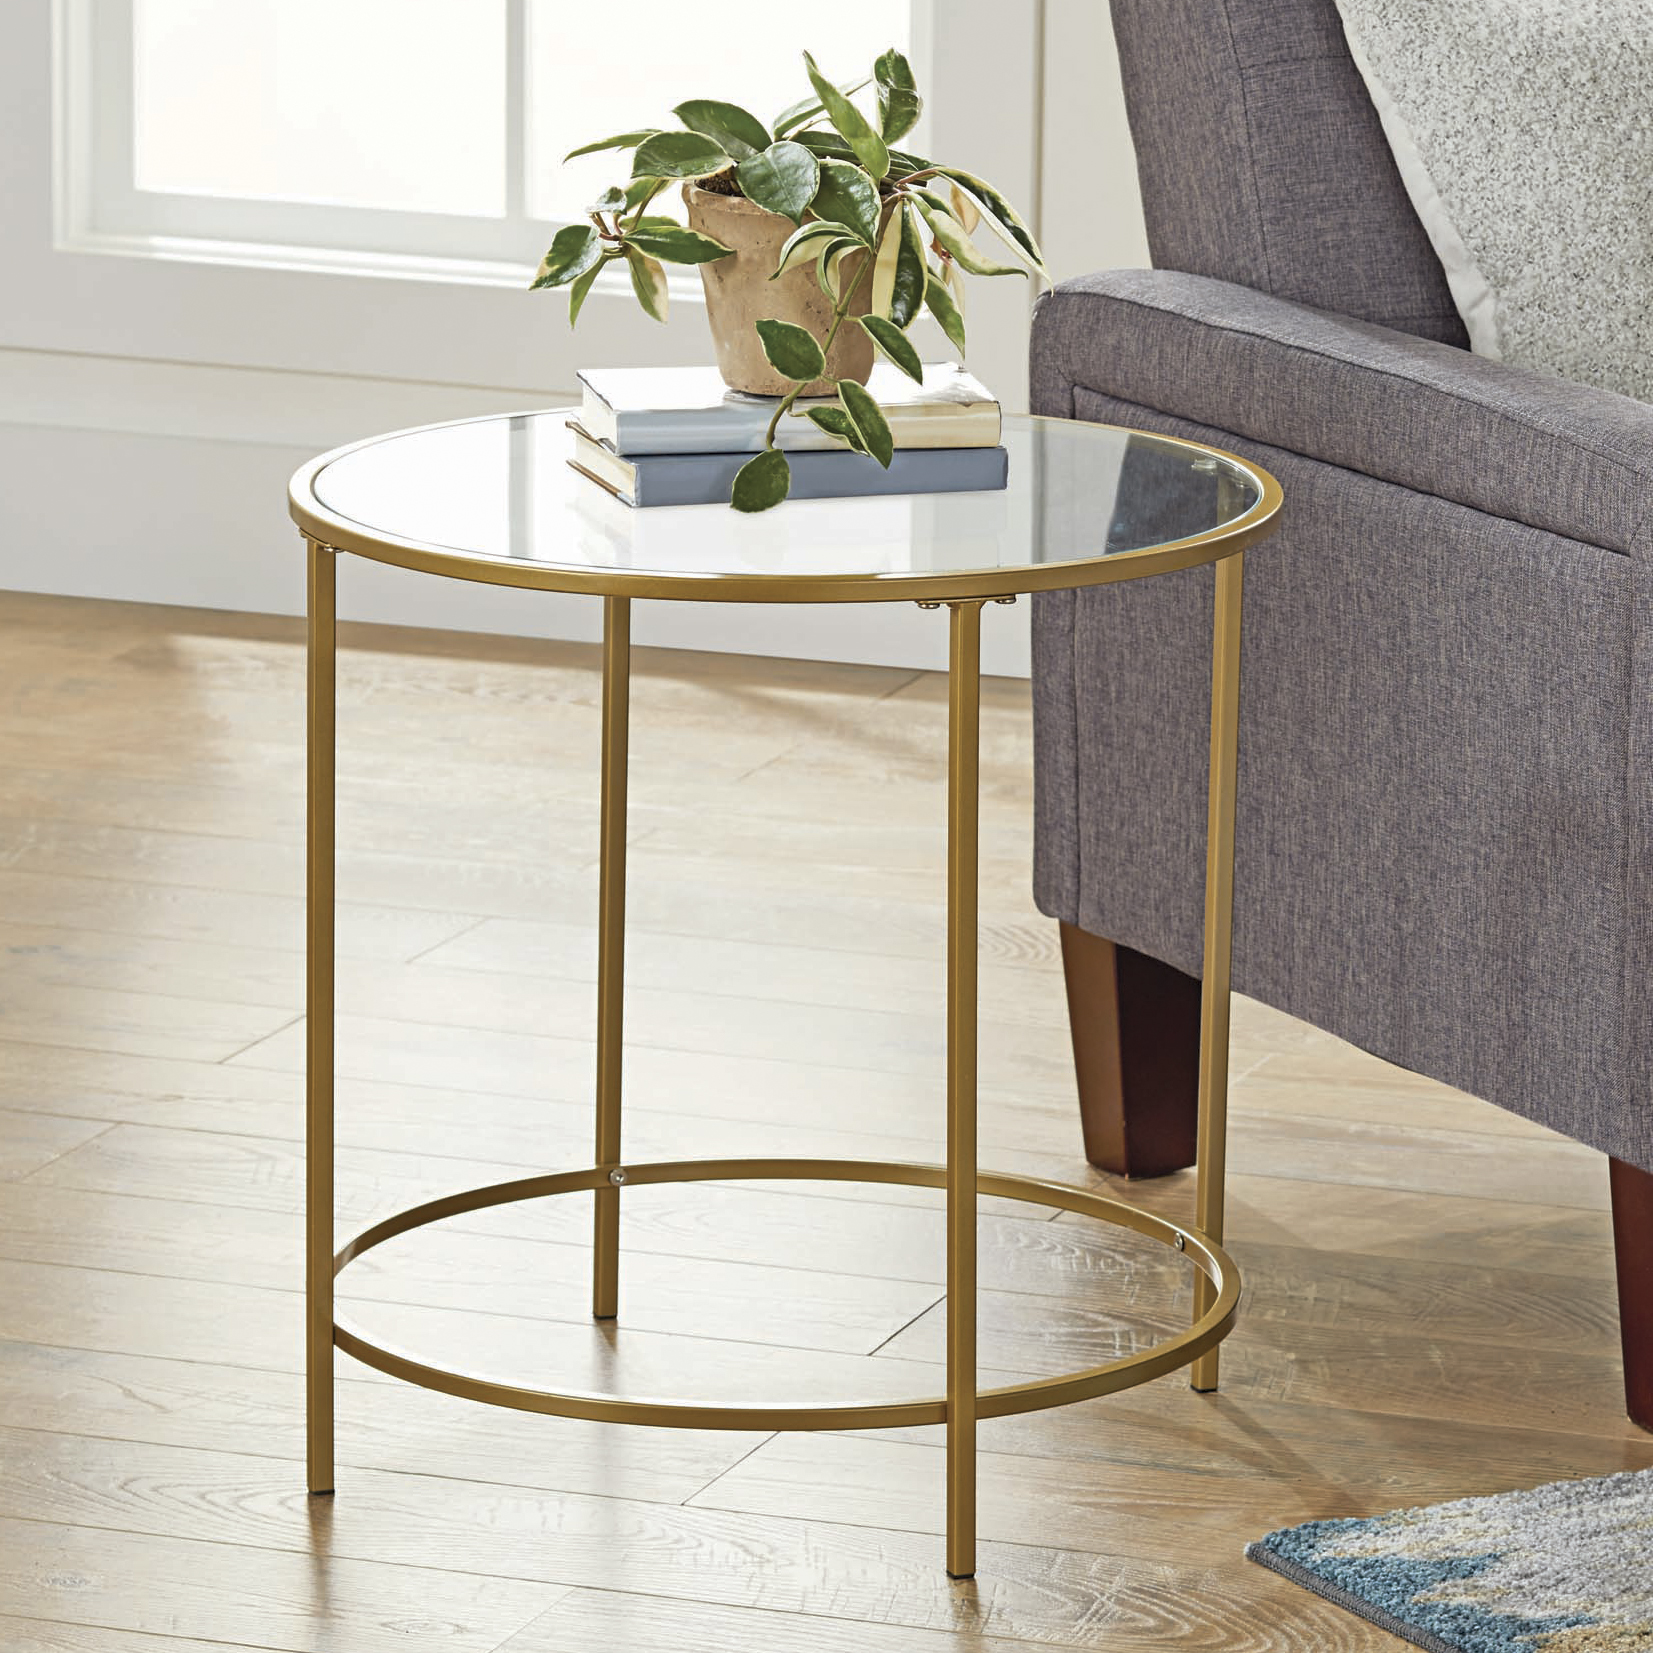 Better Homes & Gardens Nola Side Table, Multiple Finish